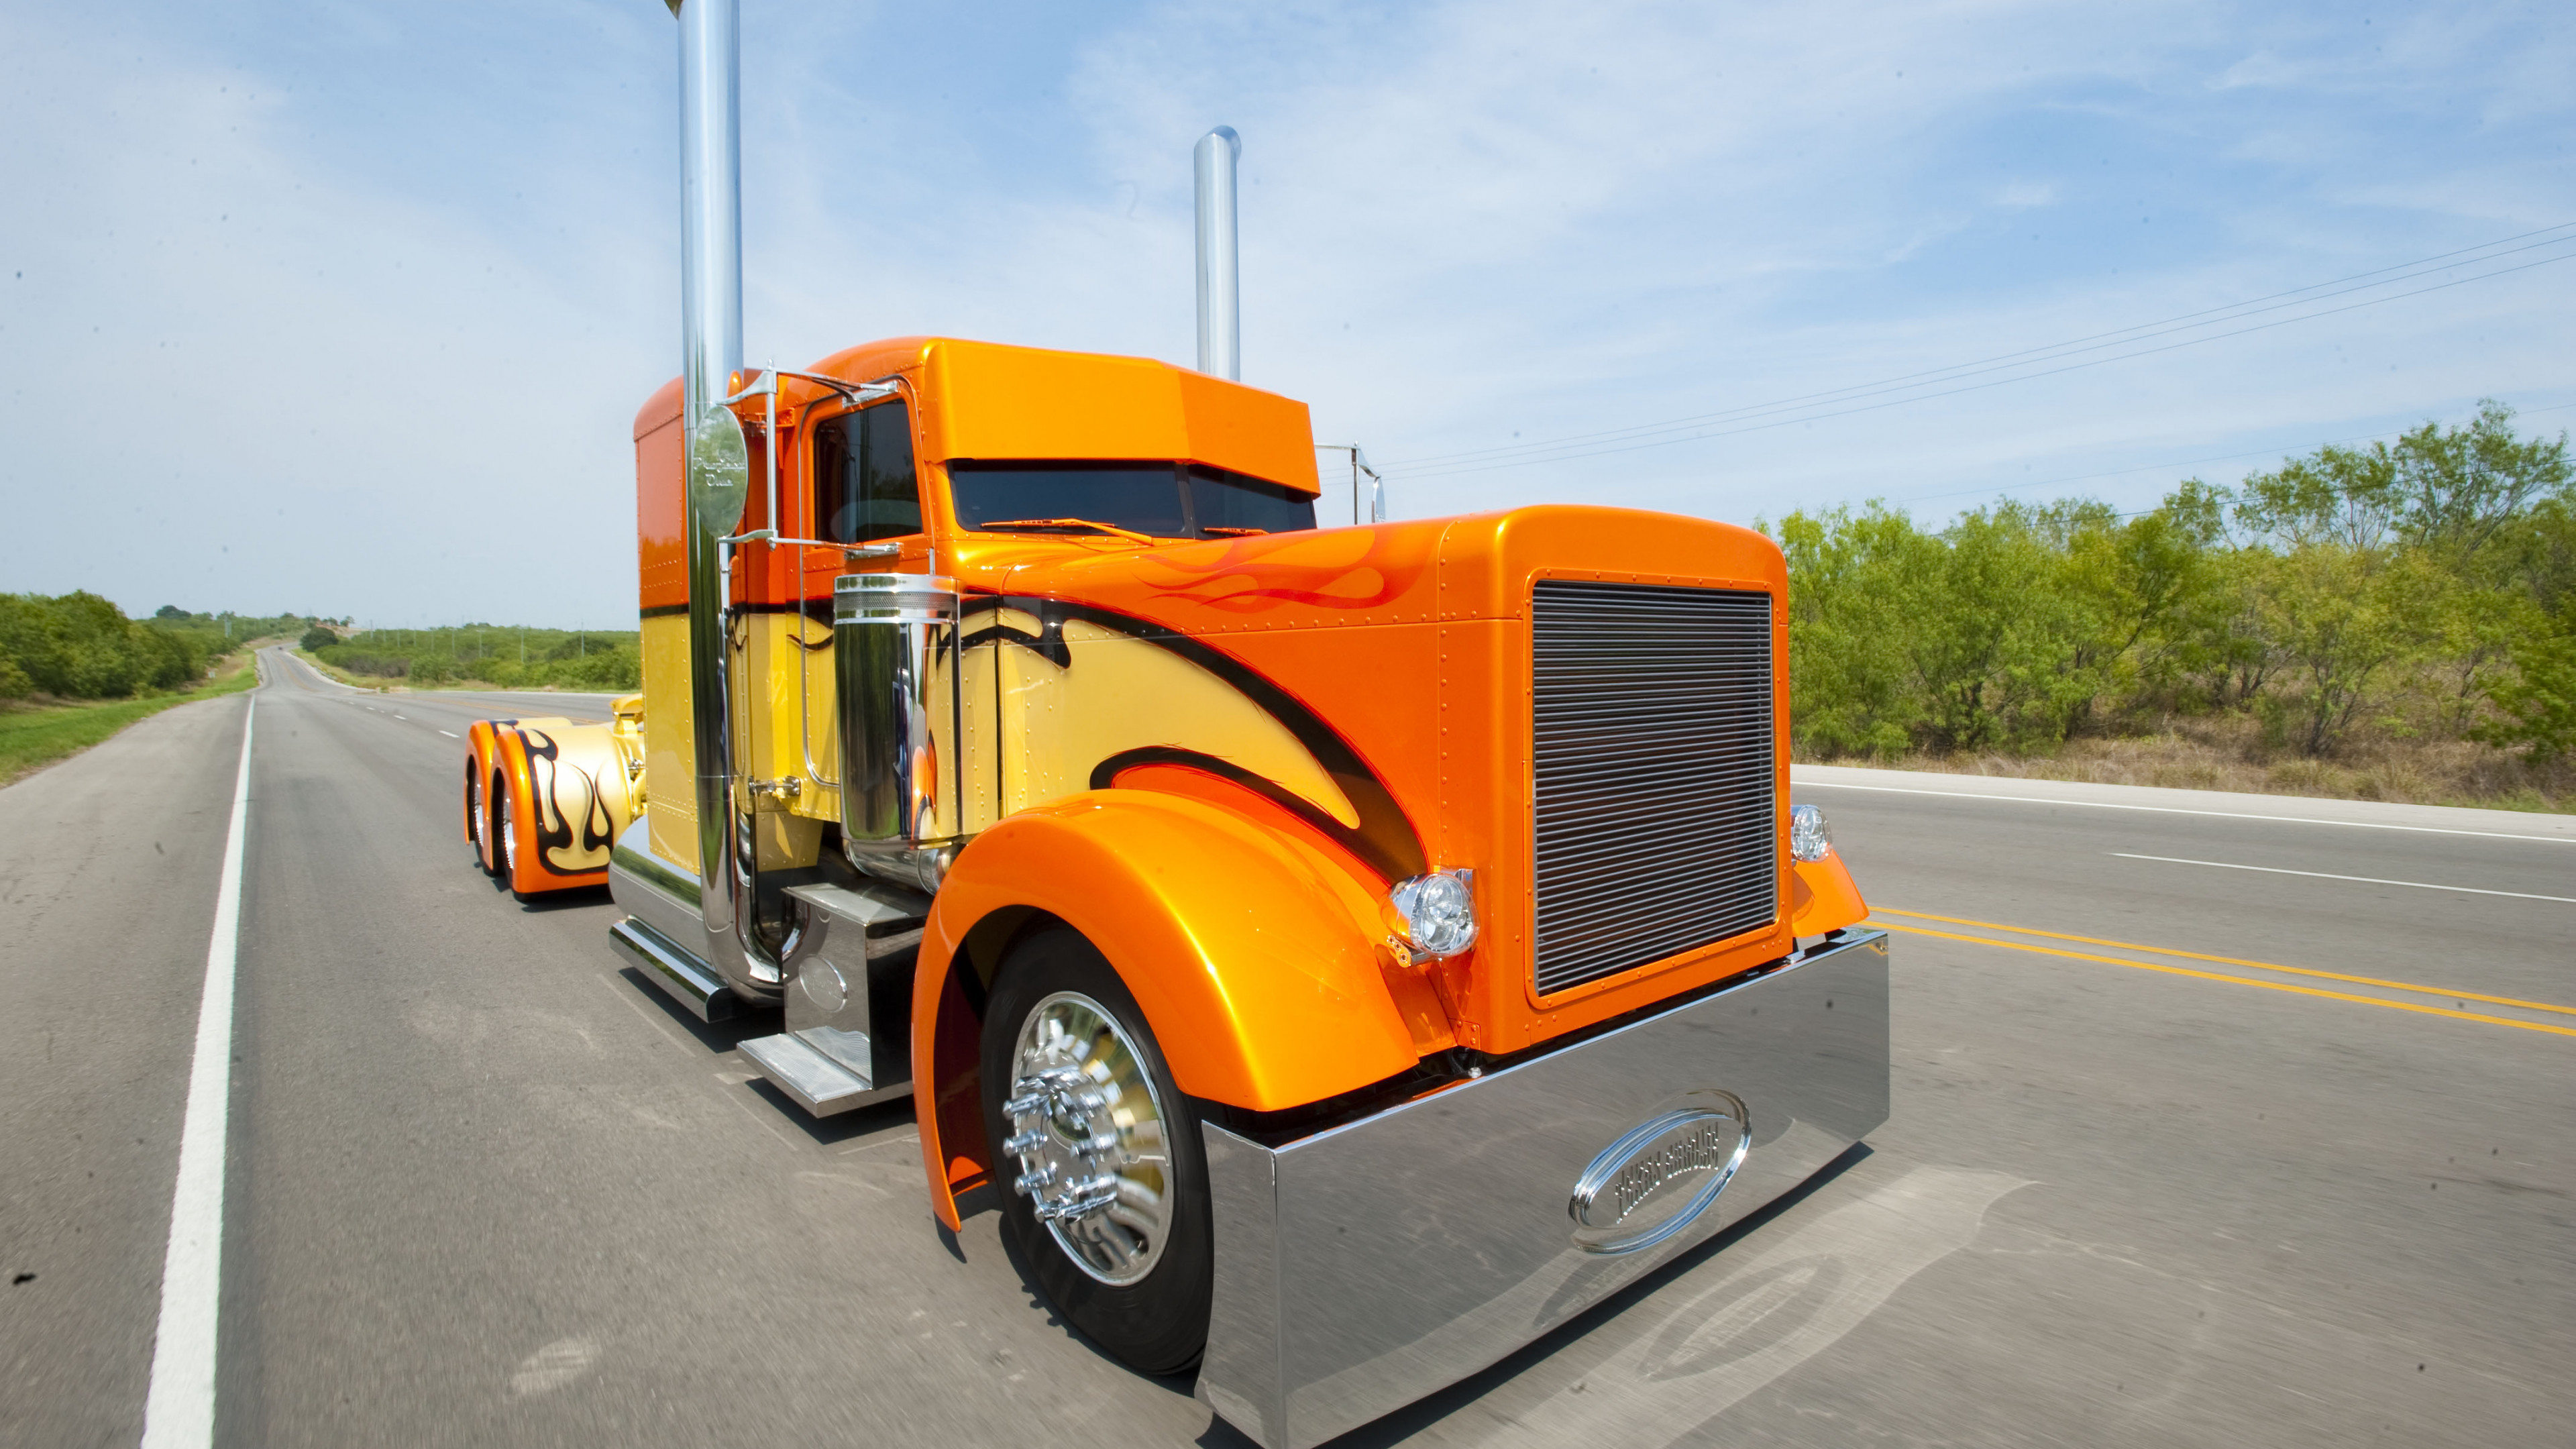 3840x2160 Semi Trailer Truck, Peterbilt 379, Mode of Transport, Freightliner Trucks,  Truck Wallpaper